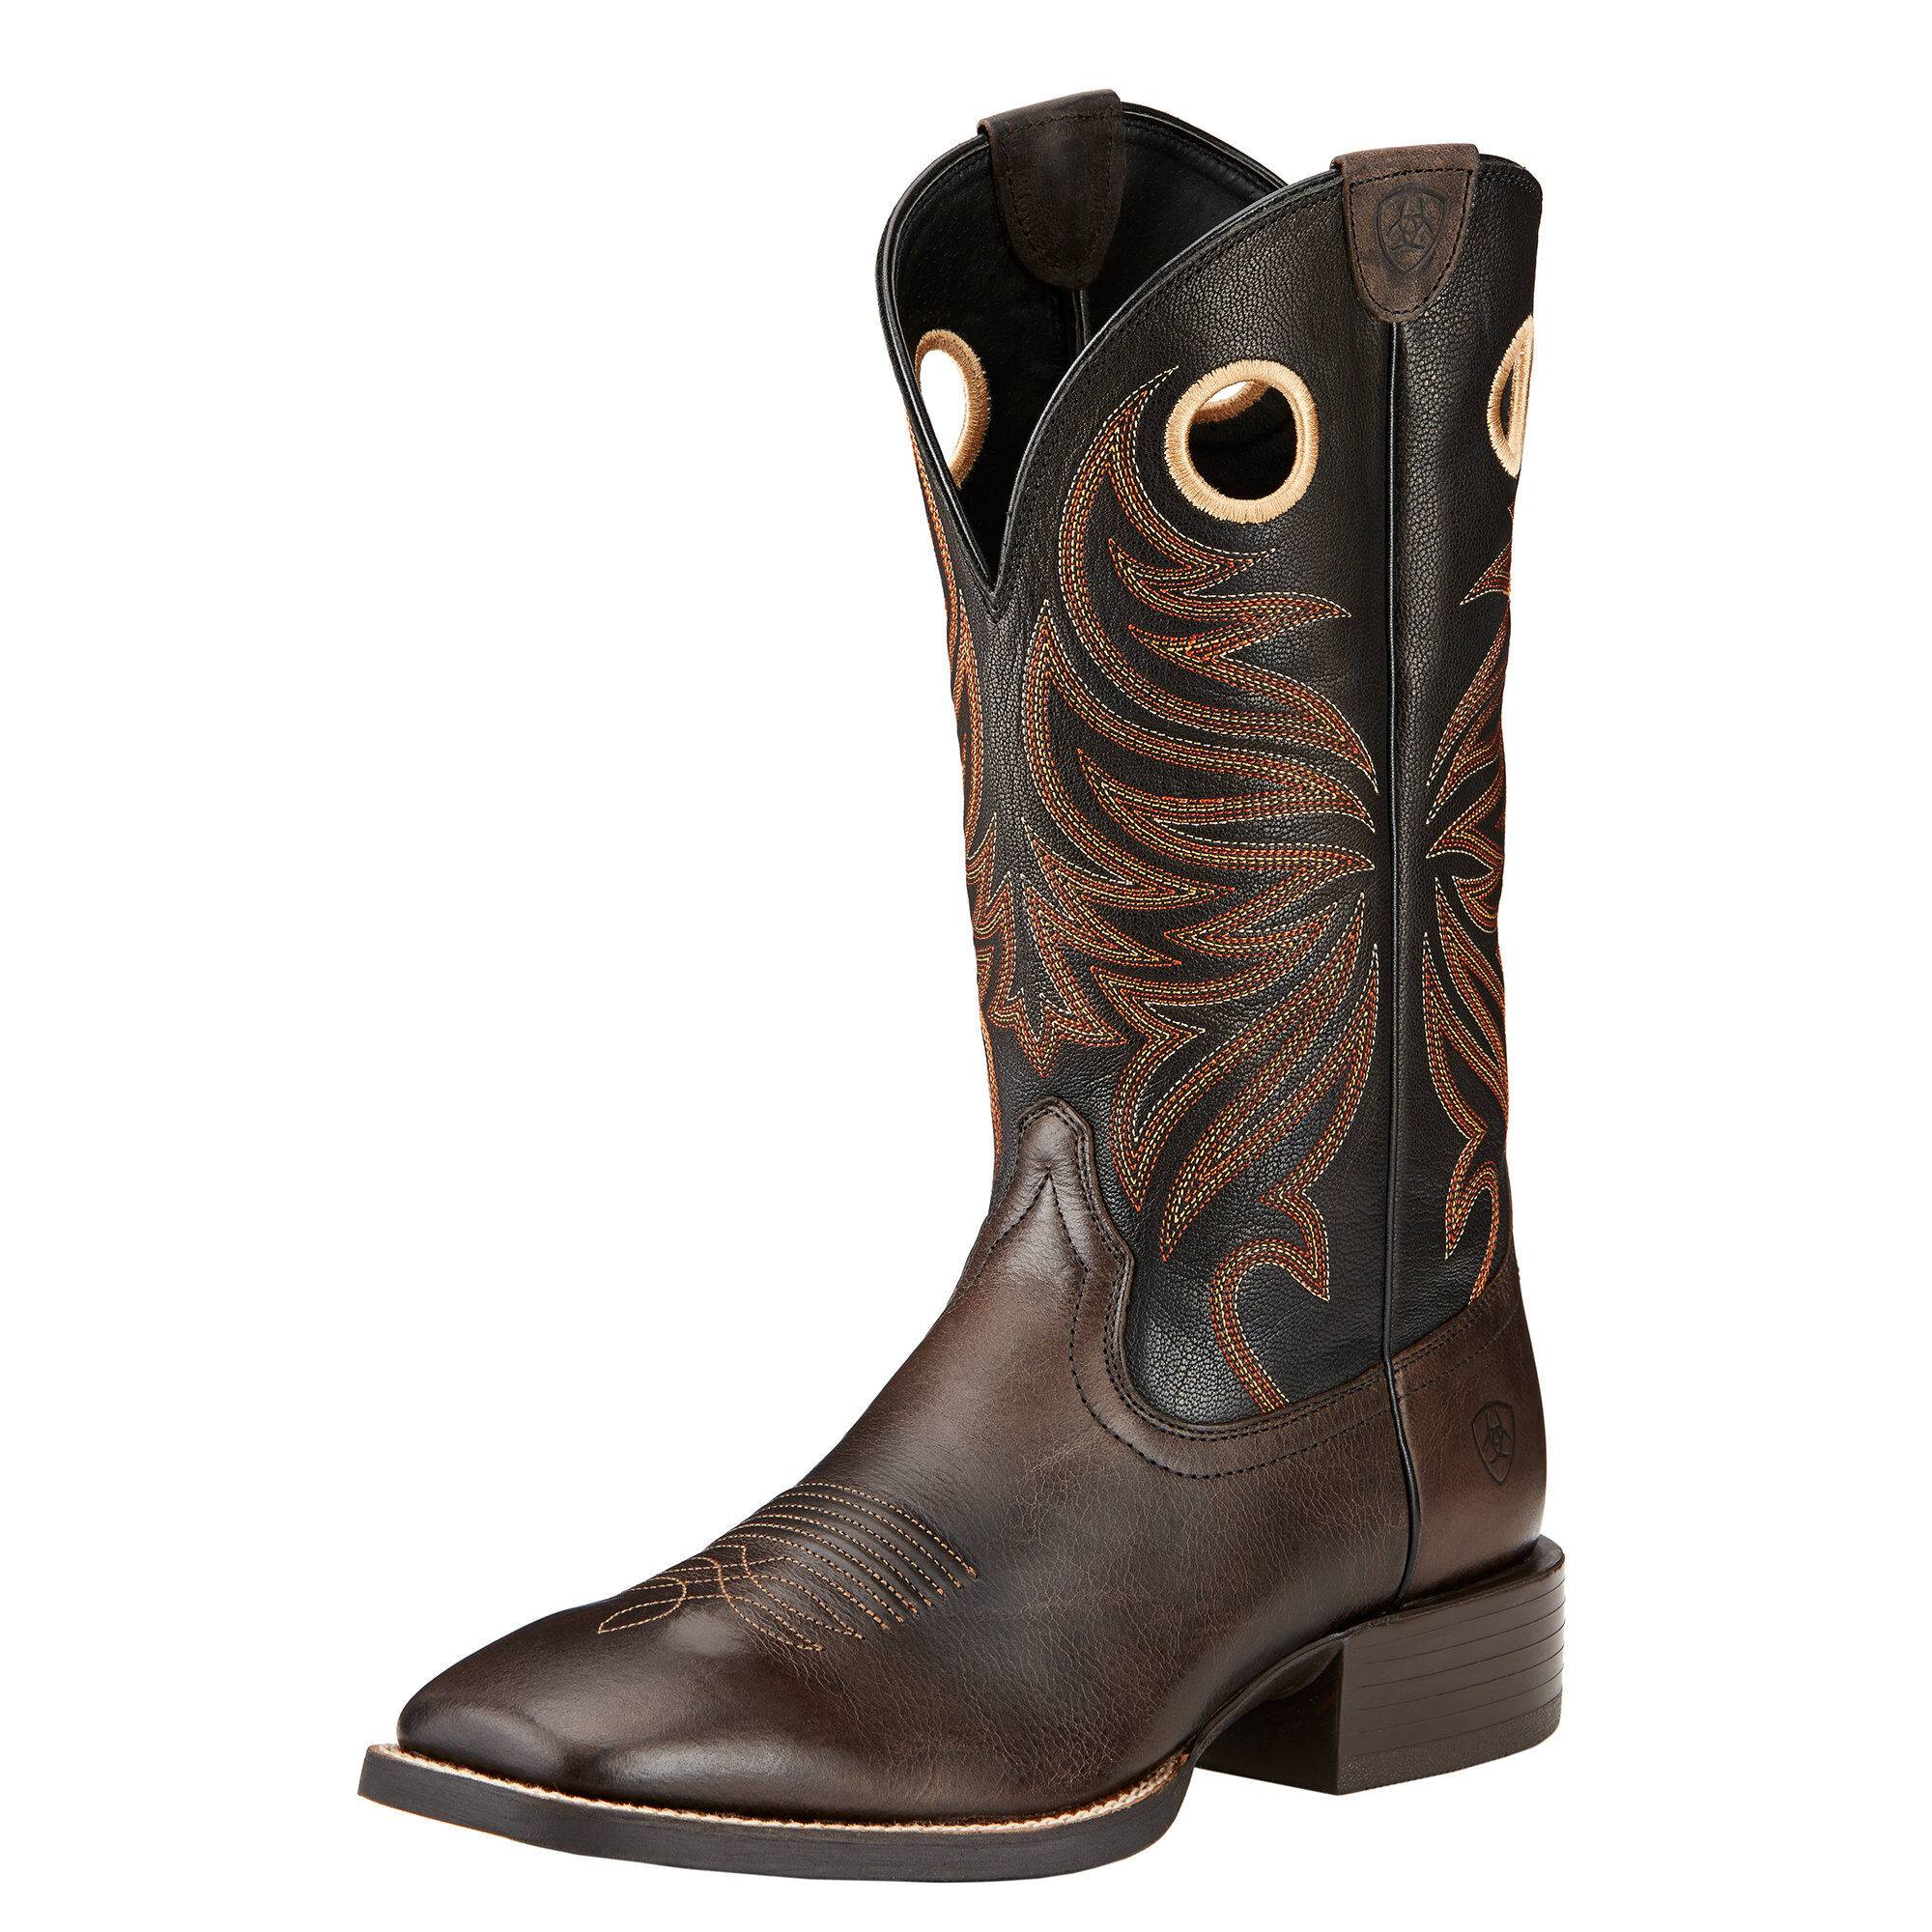 Ariat Men's Sport Rider Wide Square Toe Western Boots in Chocolate Leather, Size 11 EE / Wide by Ariat